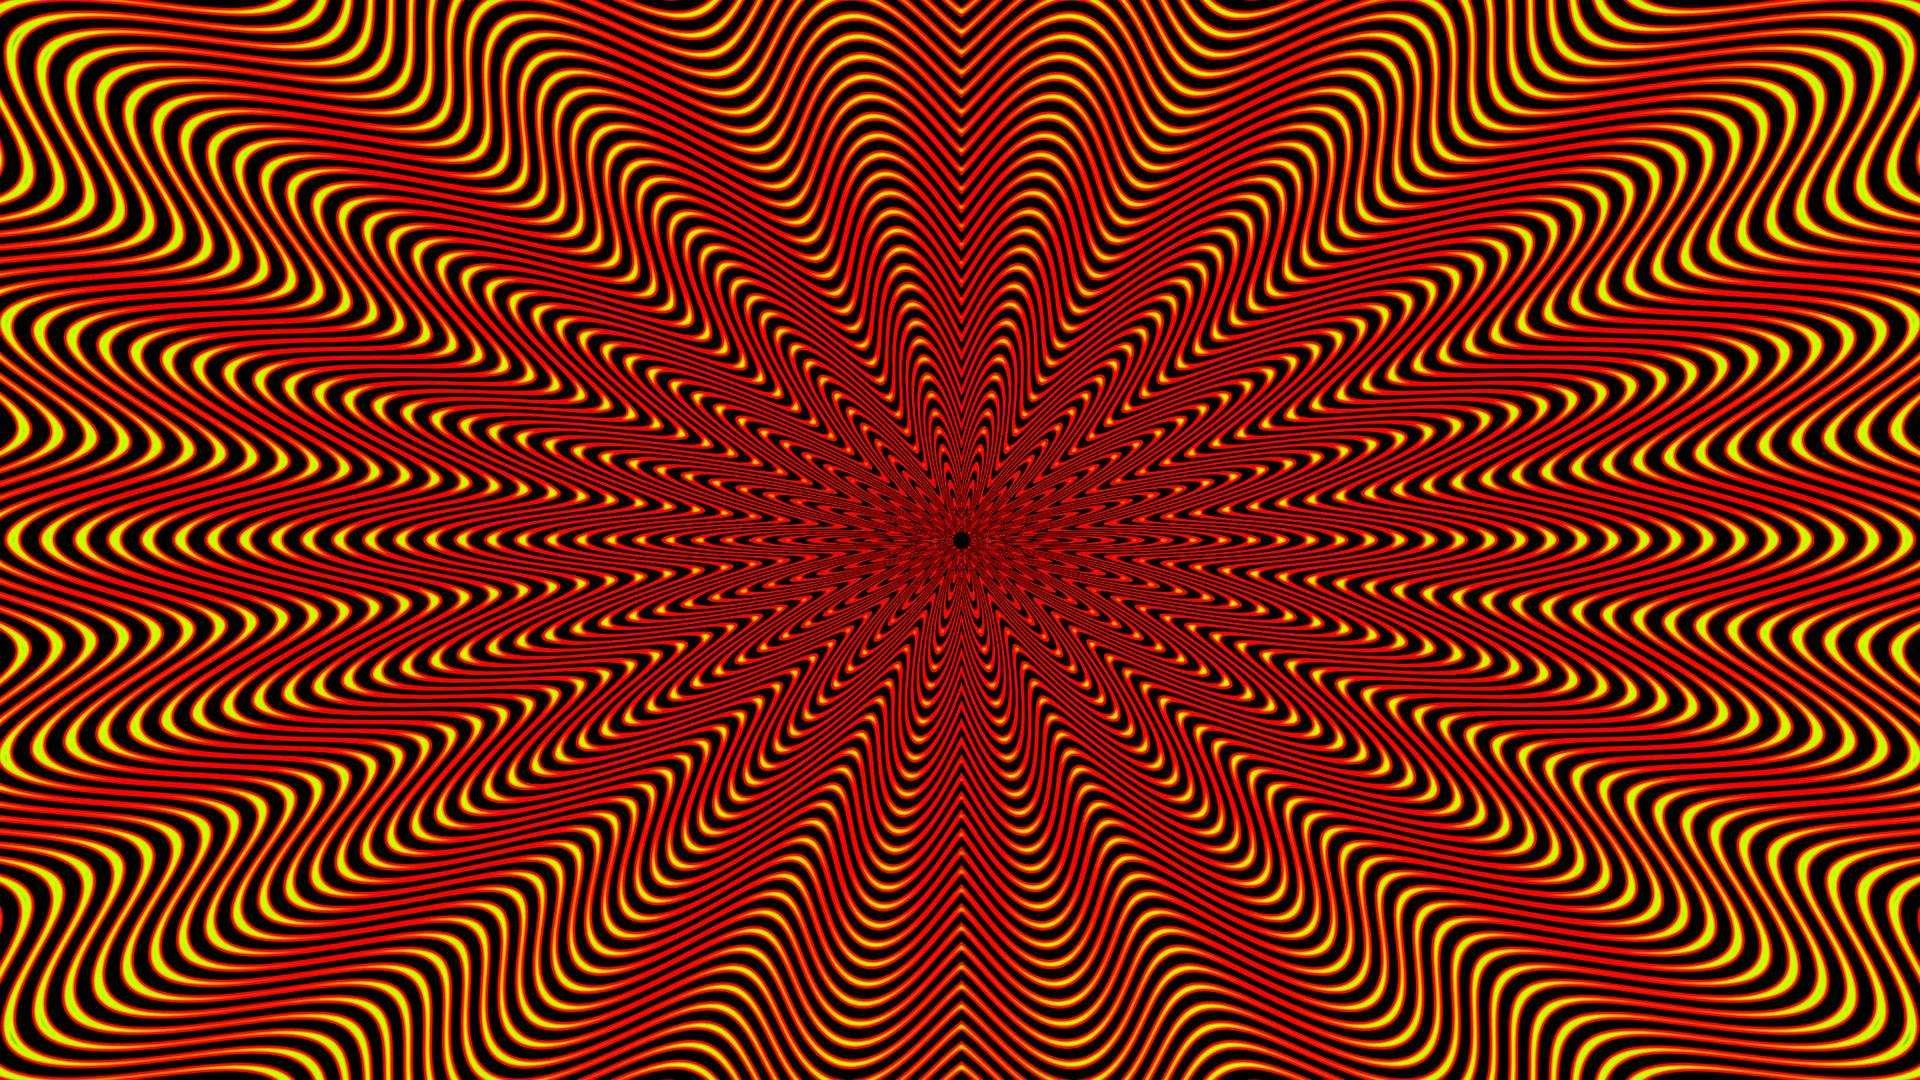 Res: 1920x1080, Optical Illusion Wallpaper Illusions Of Mobile Full Hd Pics